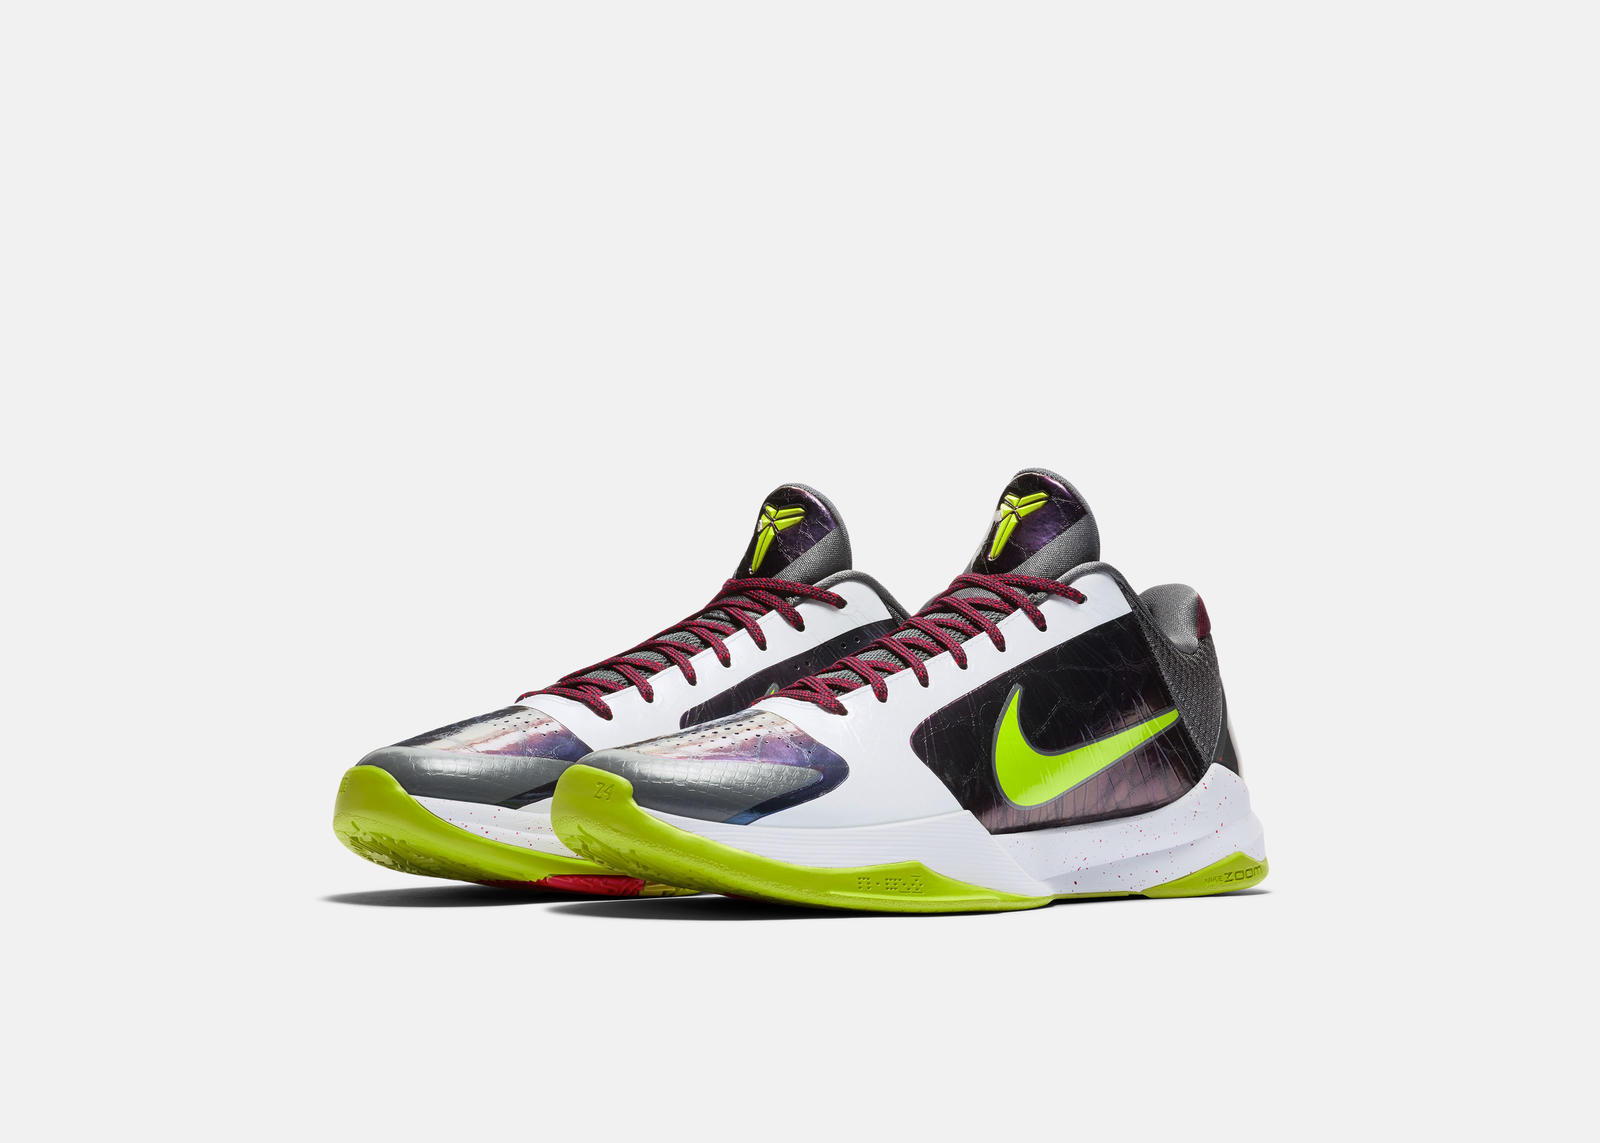 Nike Kobe 5 Protro Chaos Official Images 1